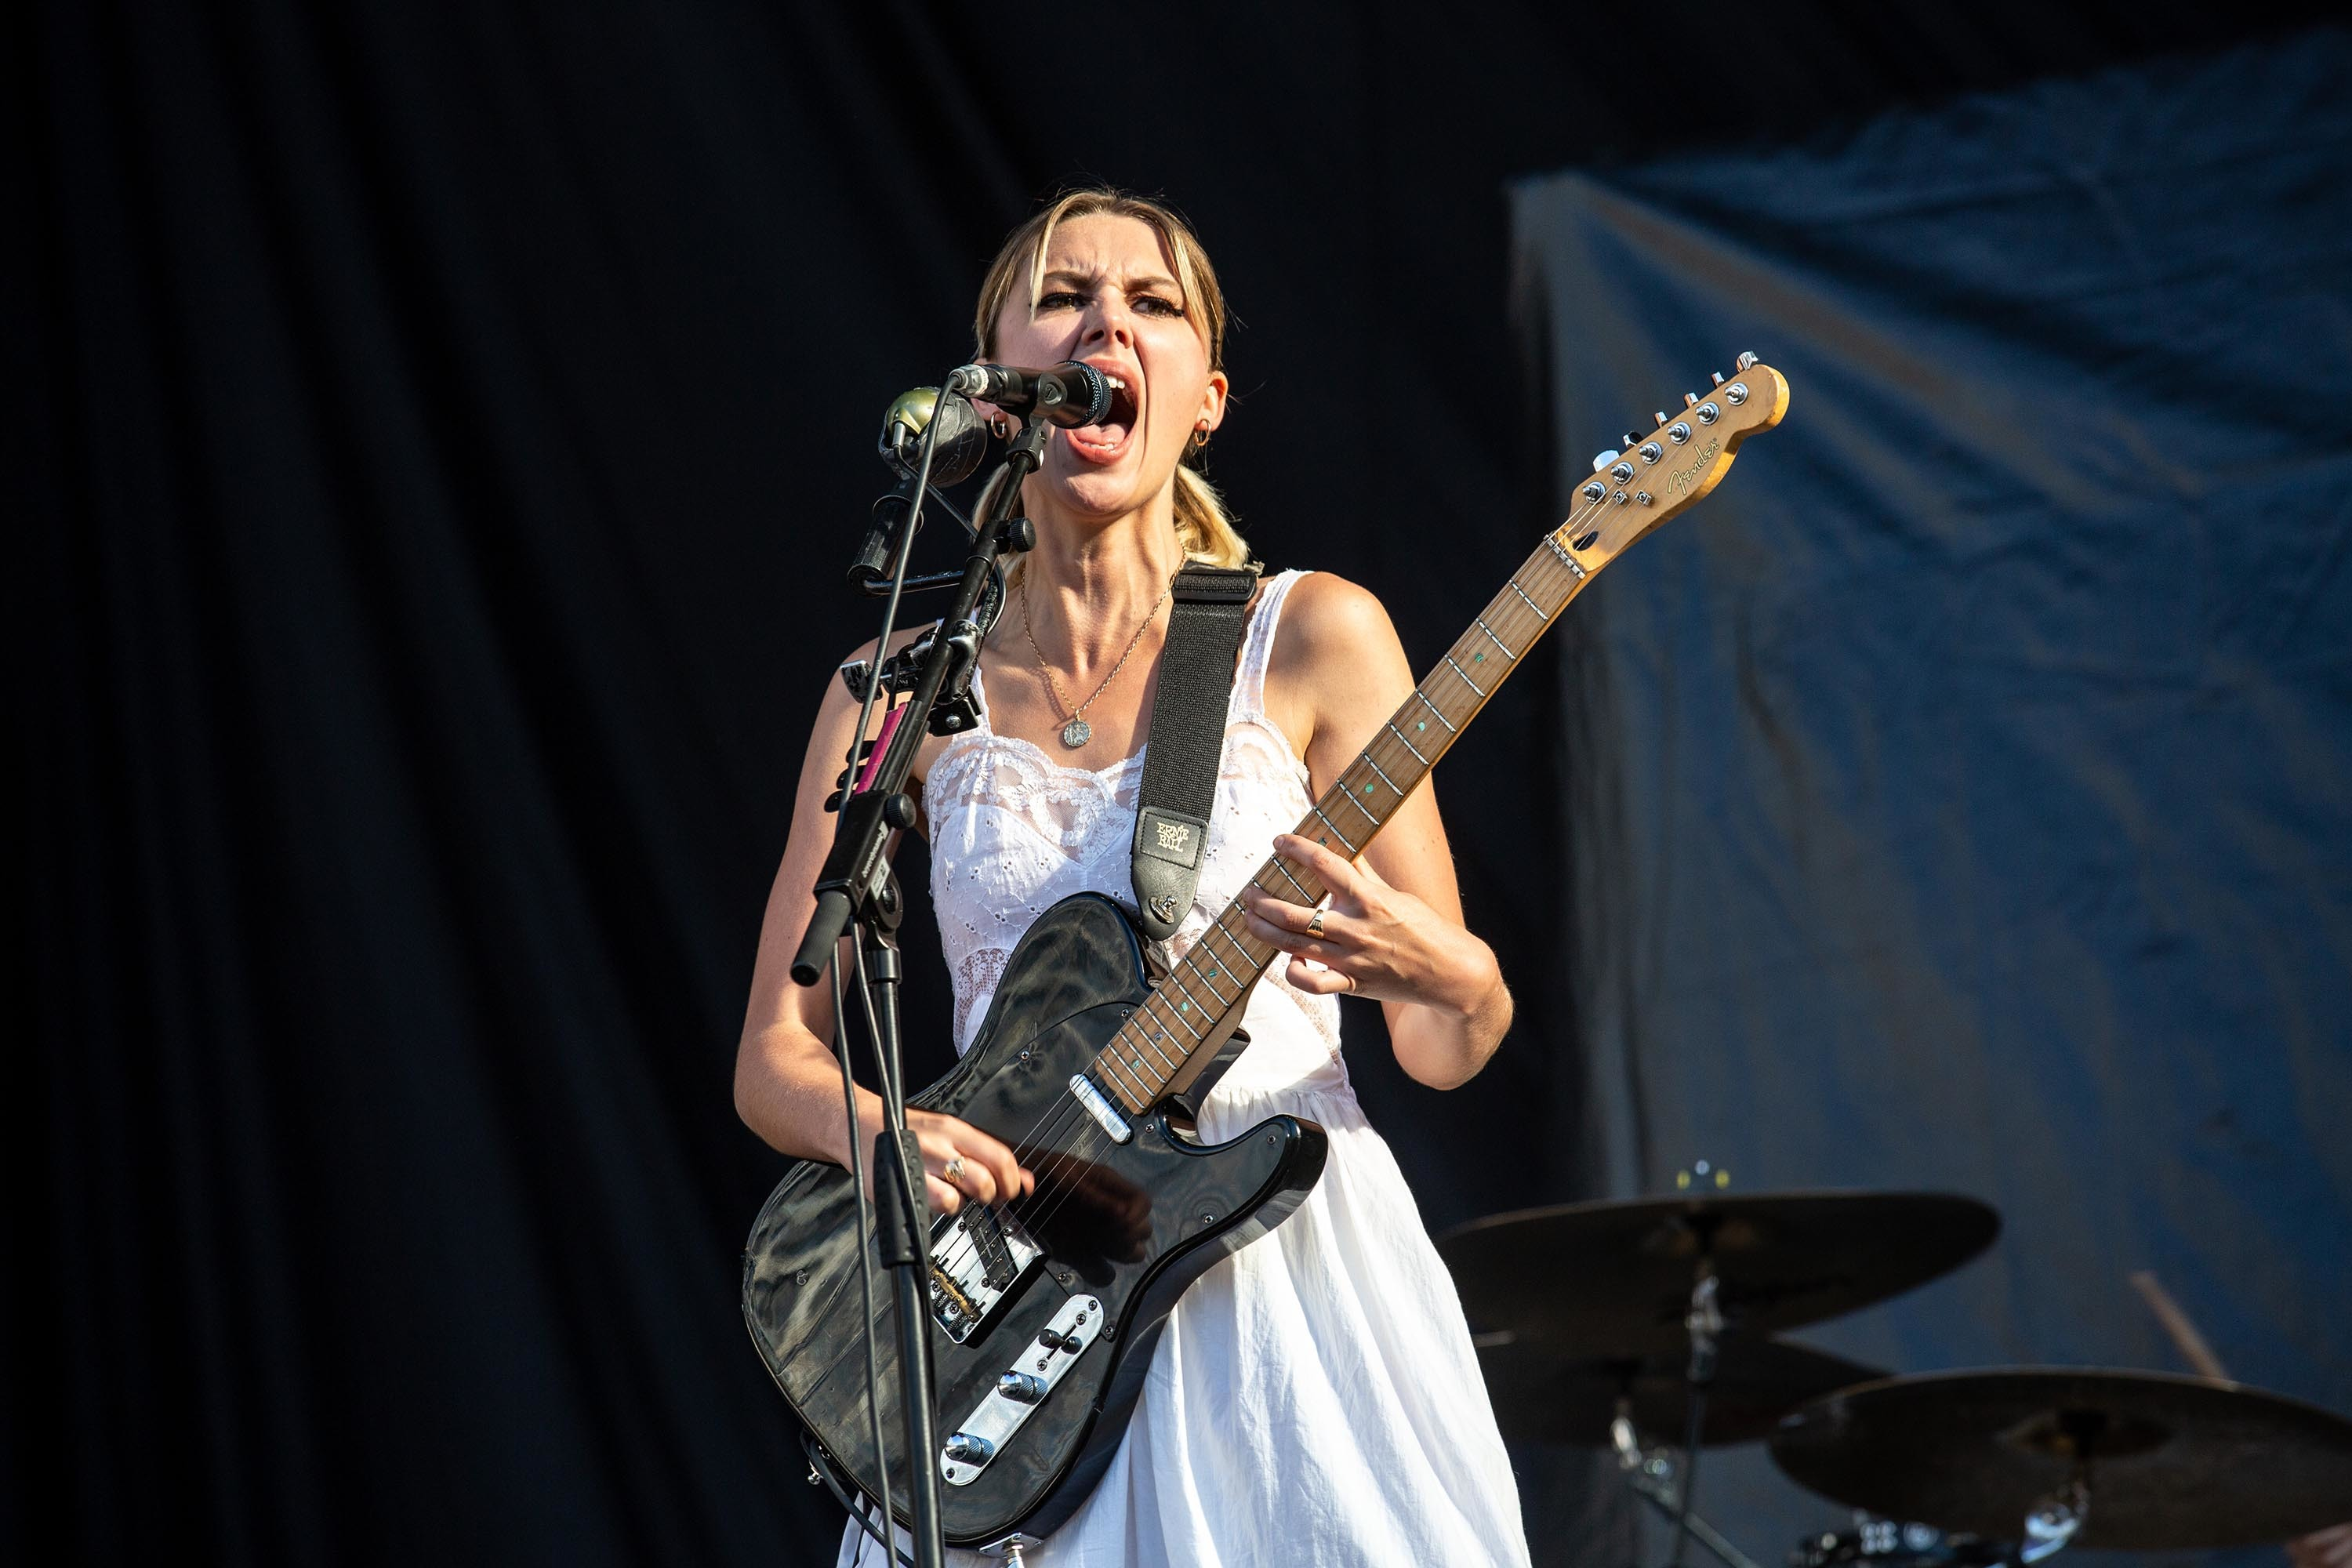 Wolf Alice, The Vaccines, Interpol and more are headed to Hong Kong's Clockenflap Festival